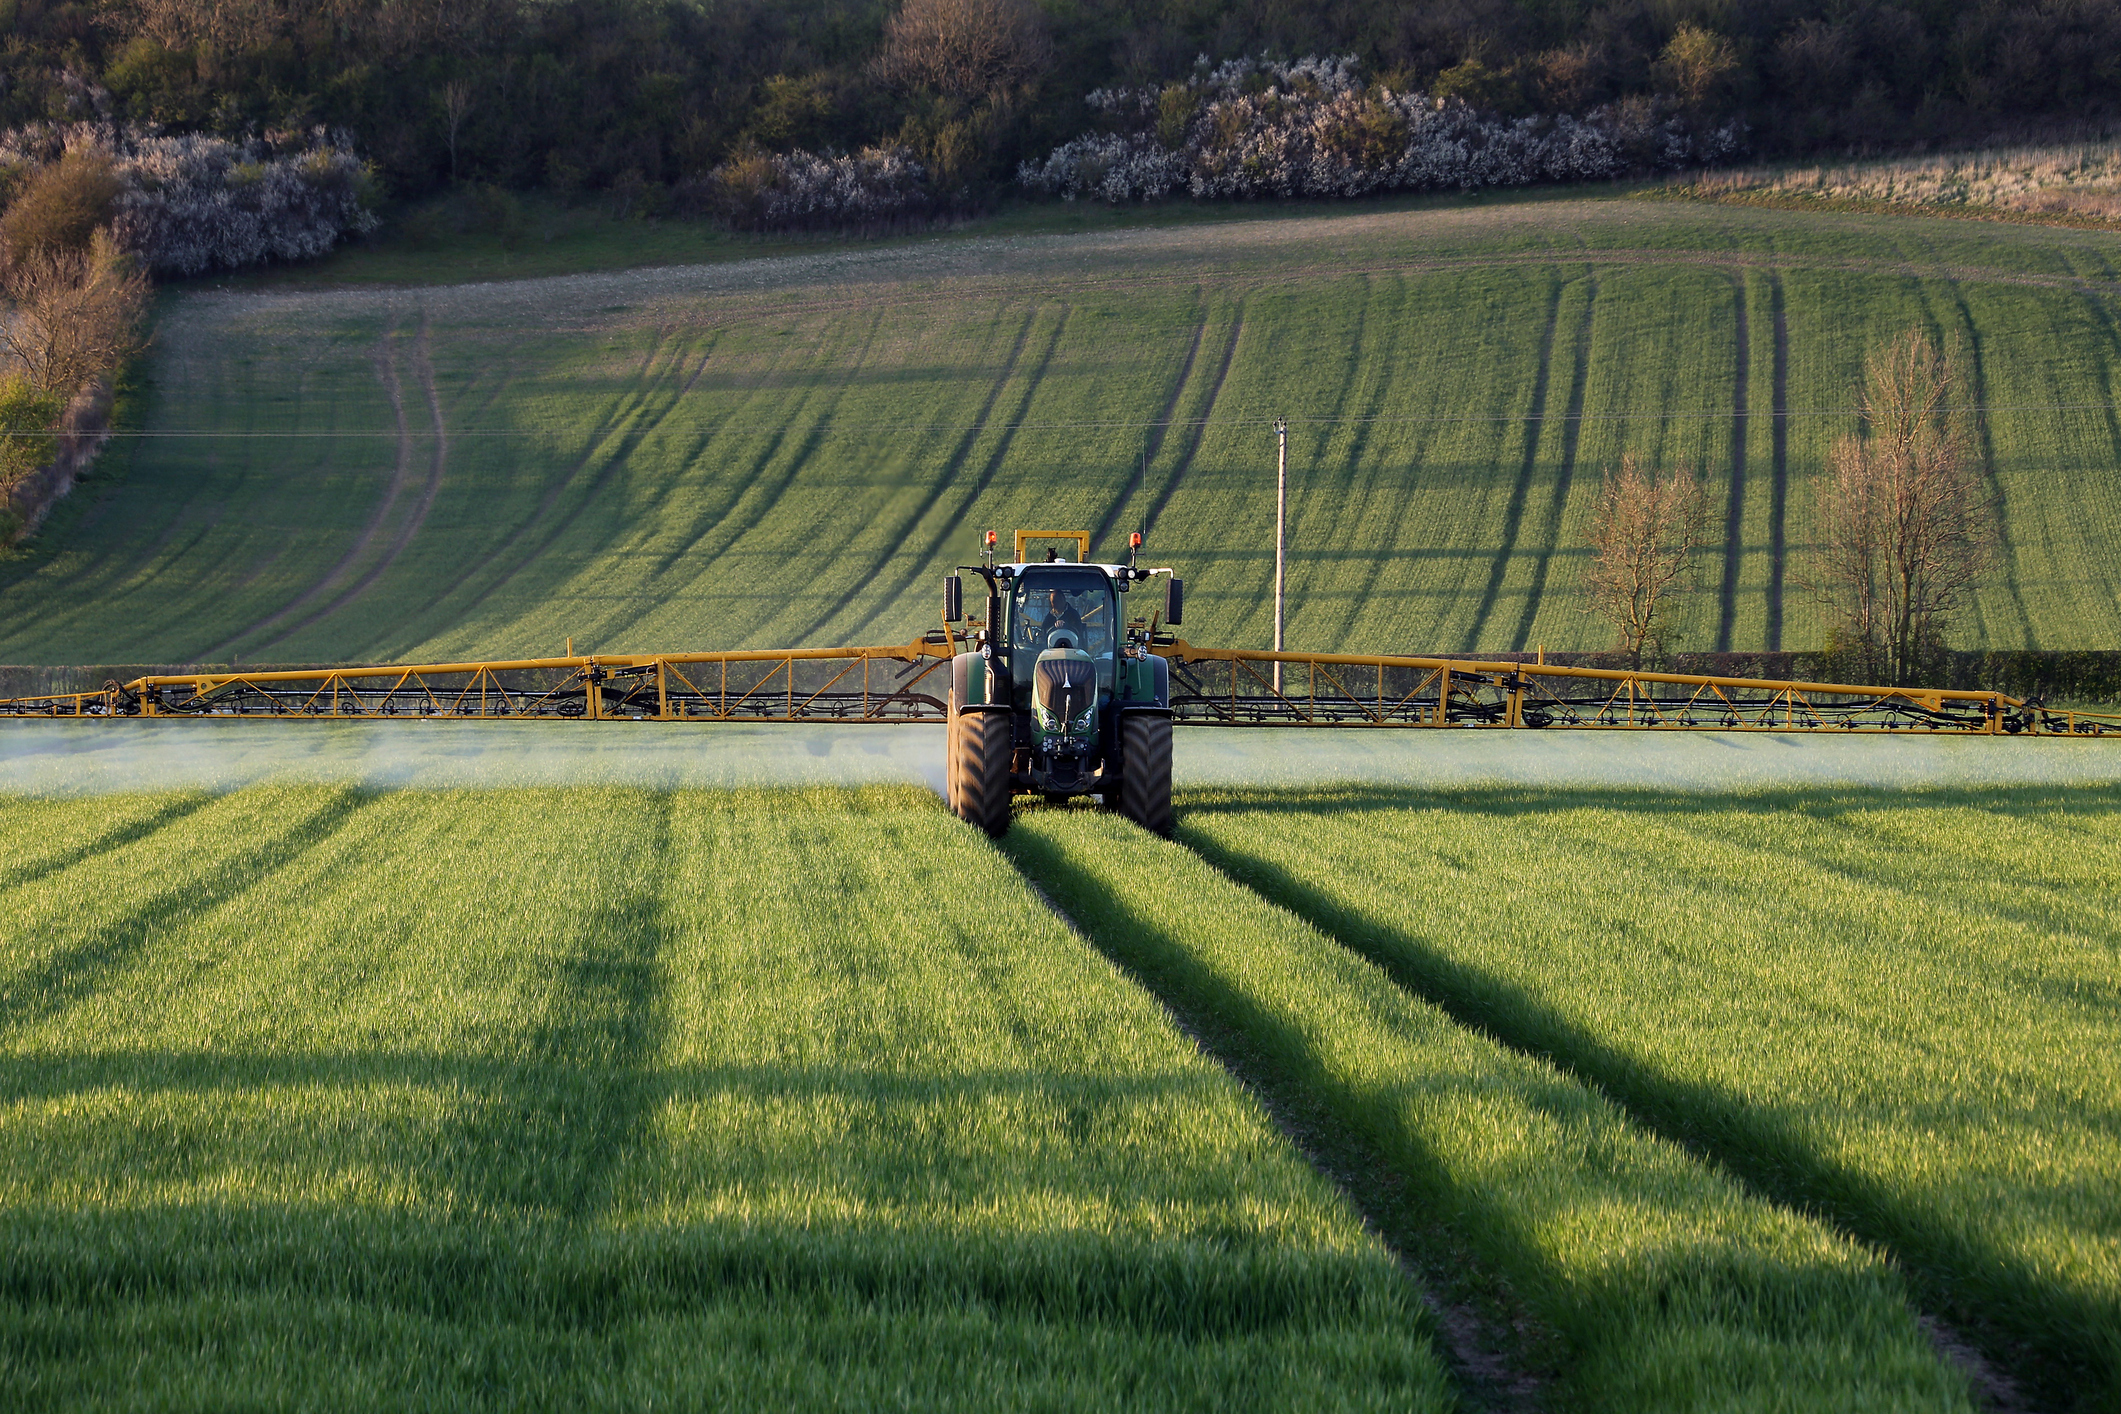 Farming organisations are desperate for clarity on the future of the chemical